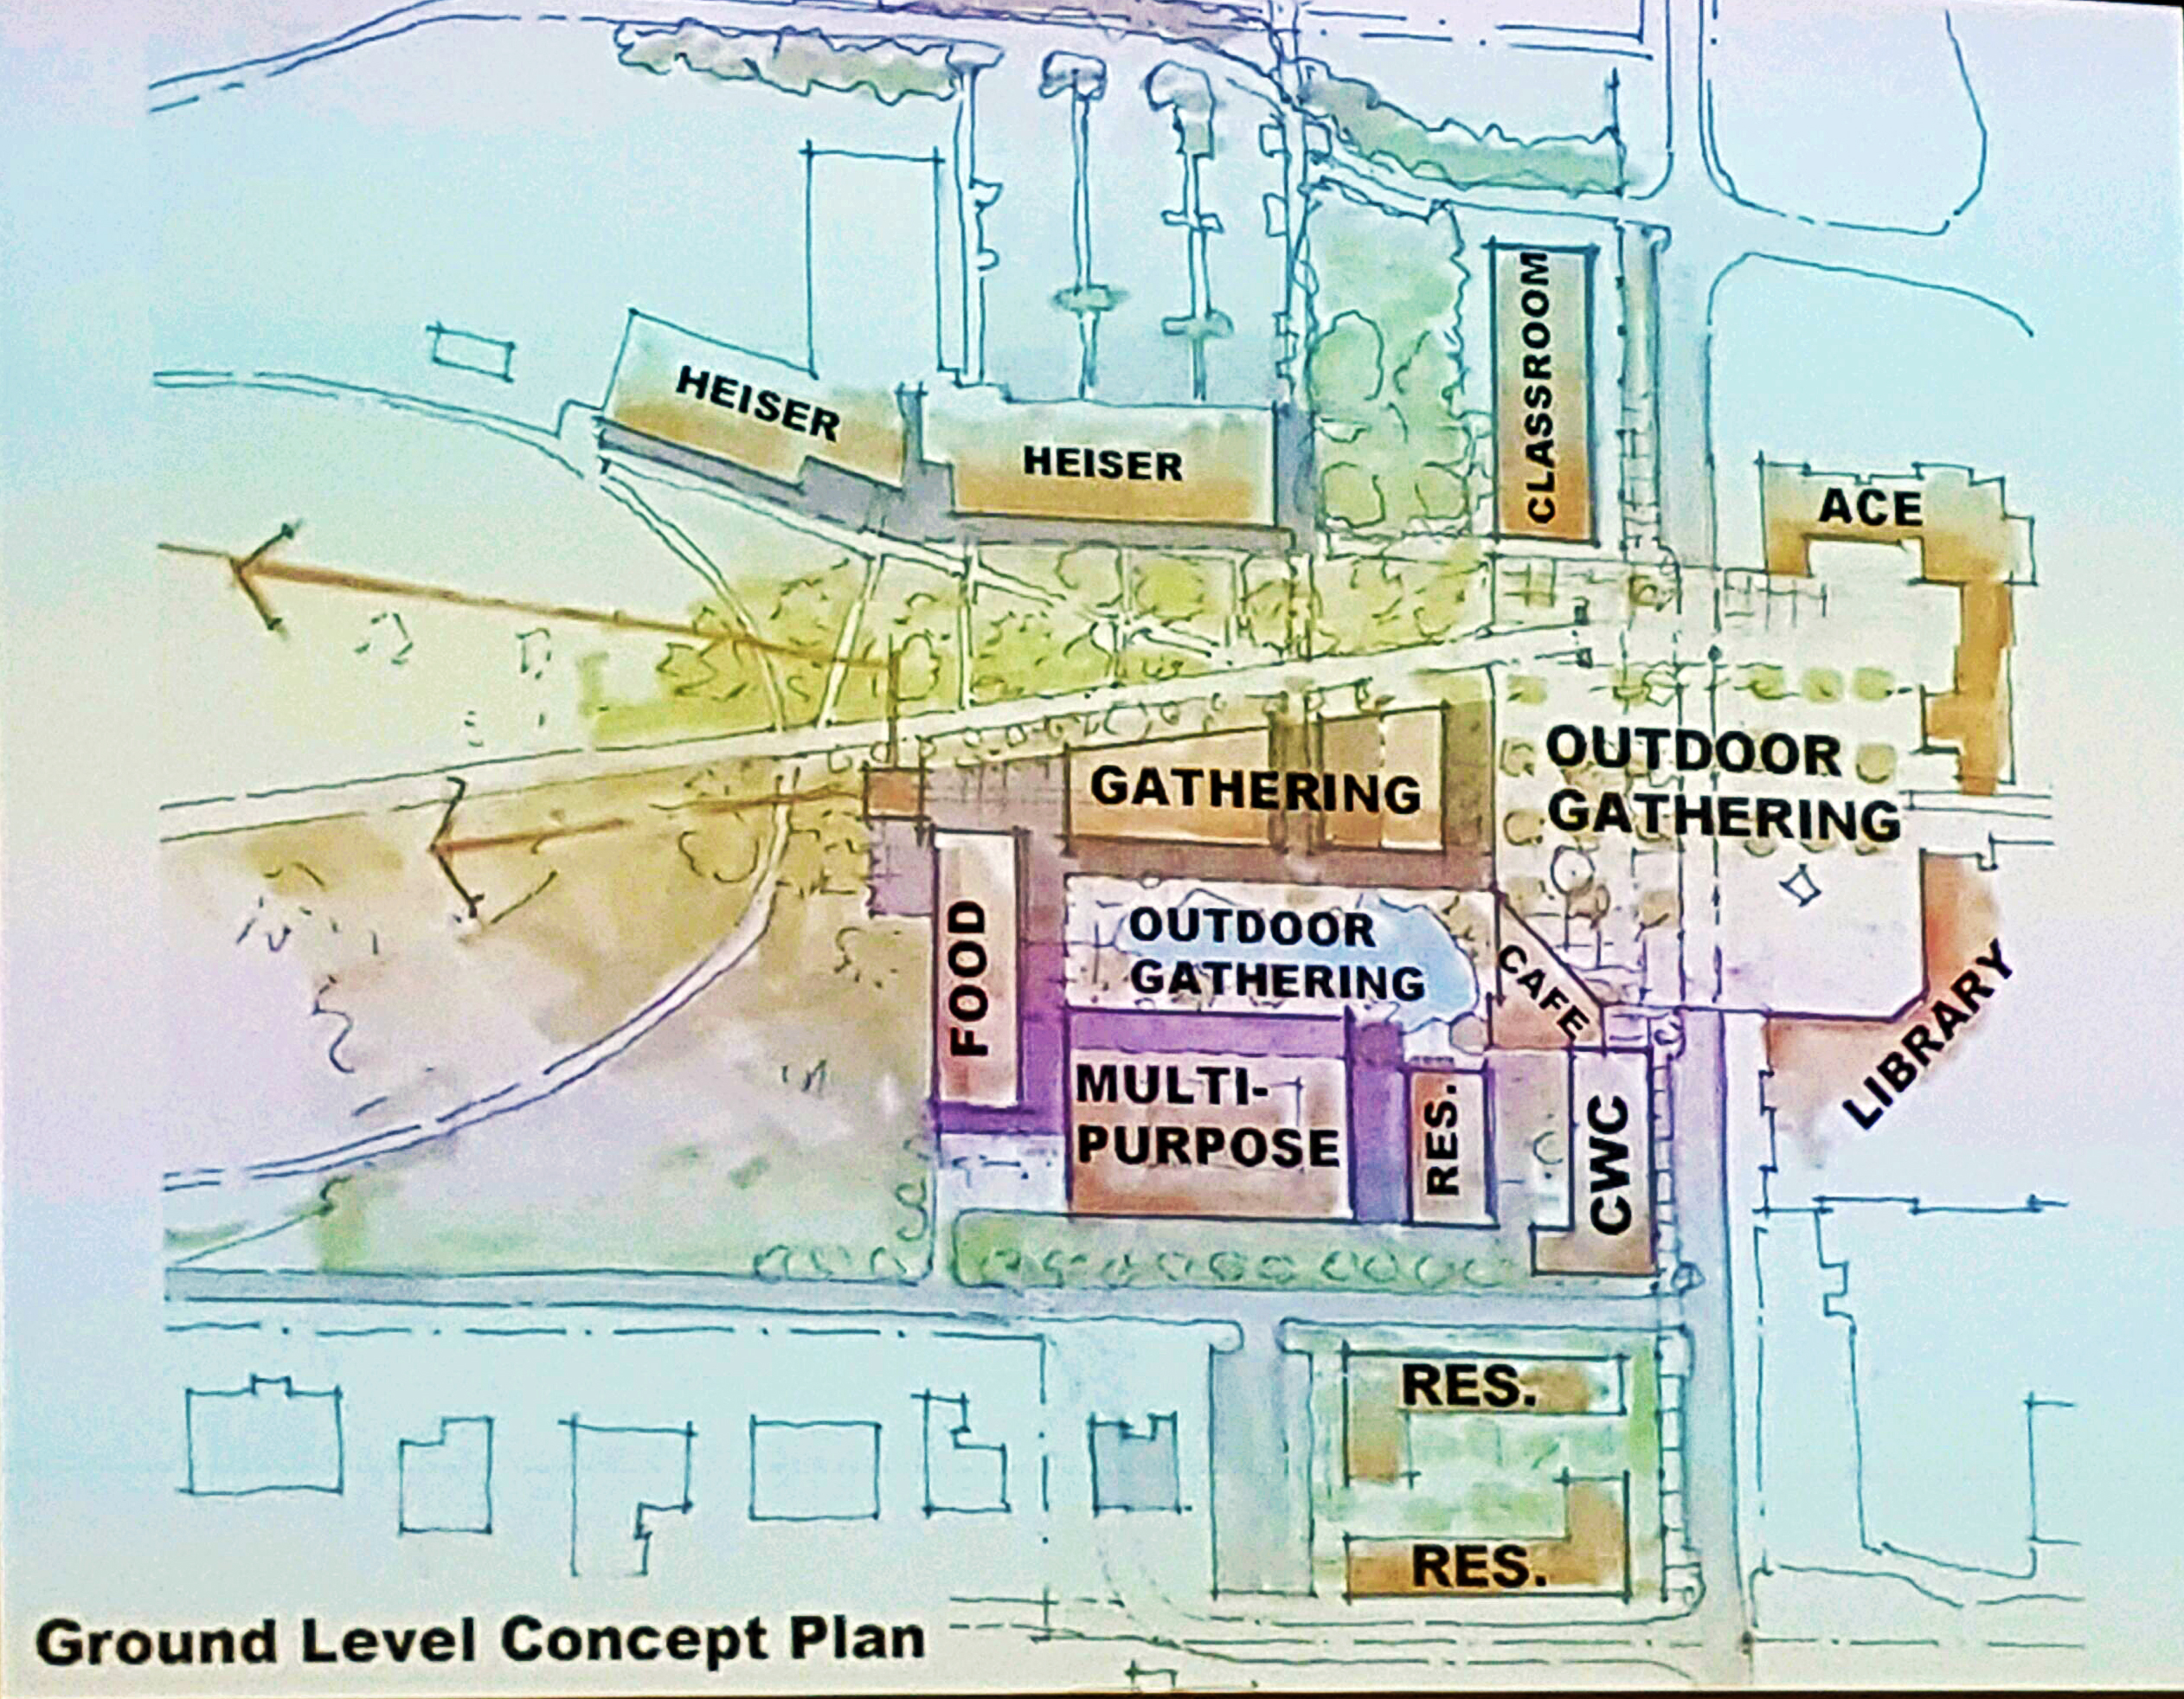 Growth Planning Charrette designs future of New College